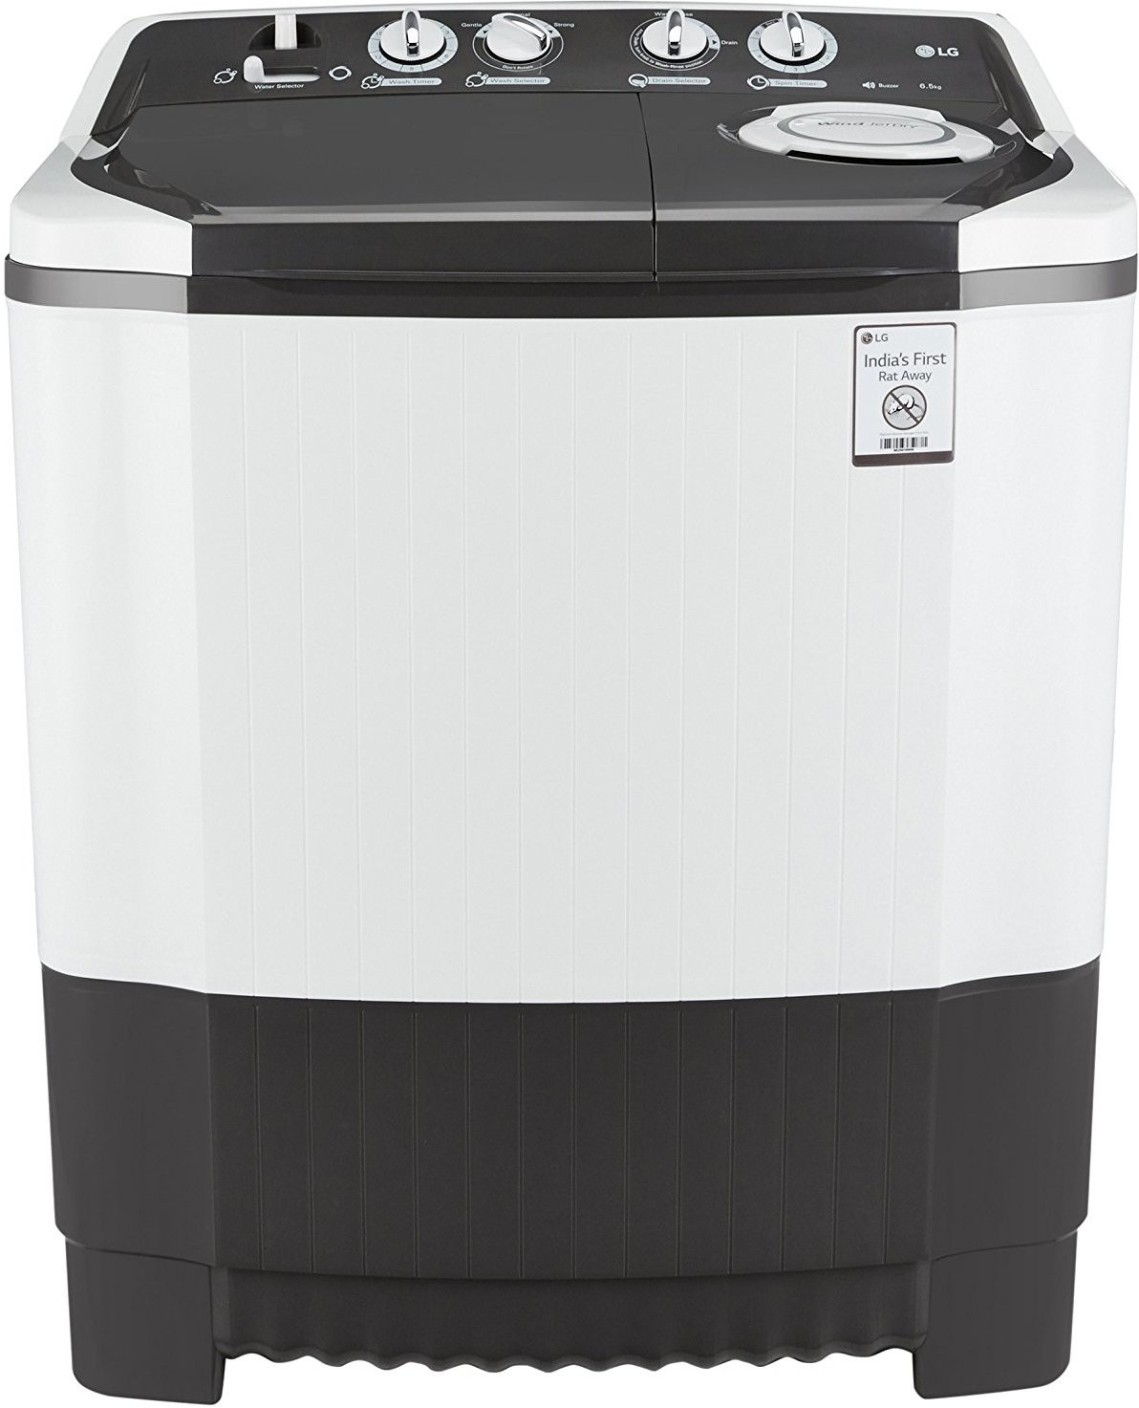 LG 6.5 kg Semi Automatic Top Load Washing Machine Grey ...